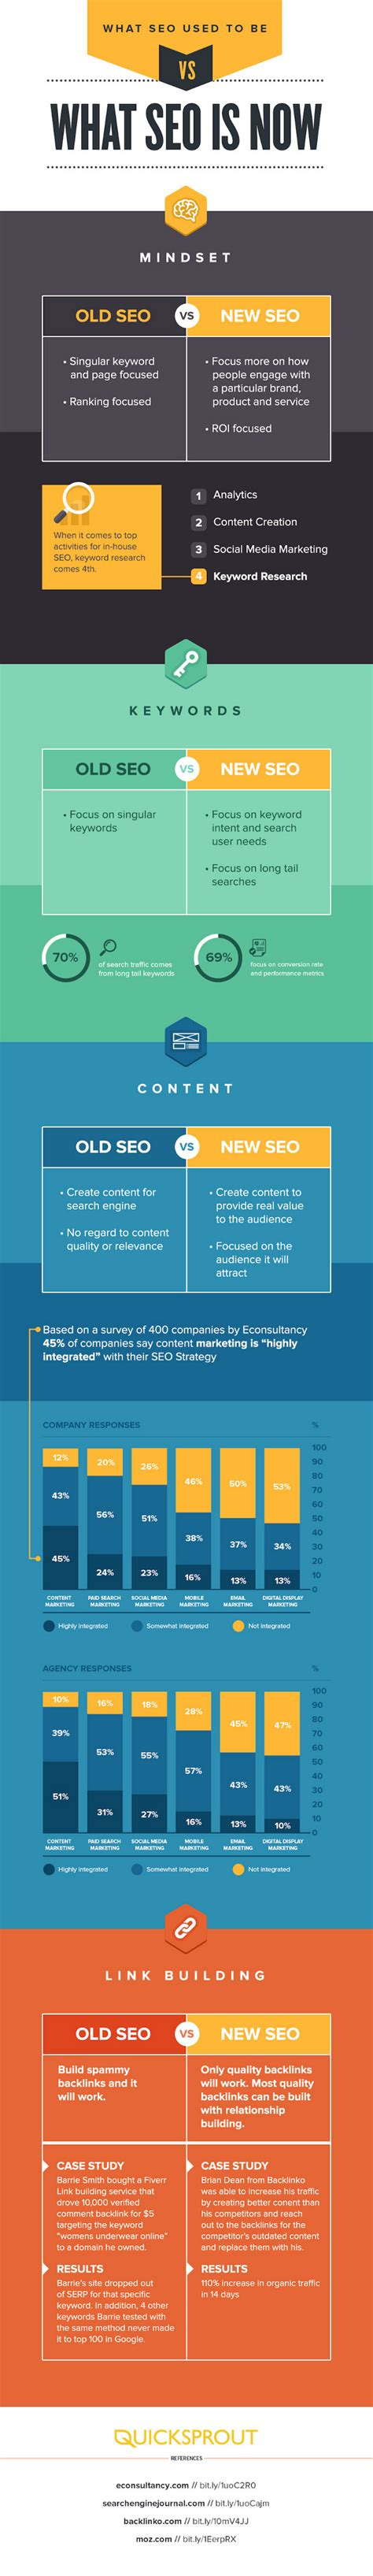 seo strategies for new website 2015 best seo service 7 top seo strategies for 2015 brandongaille com